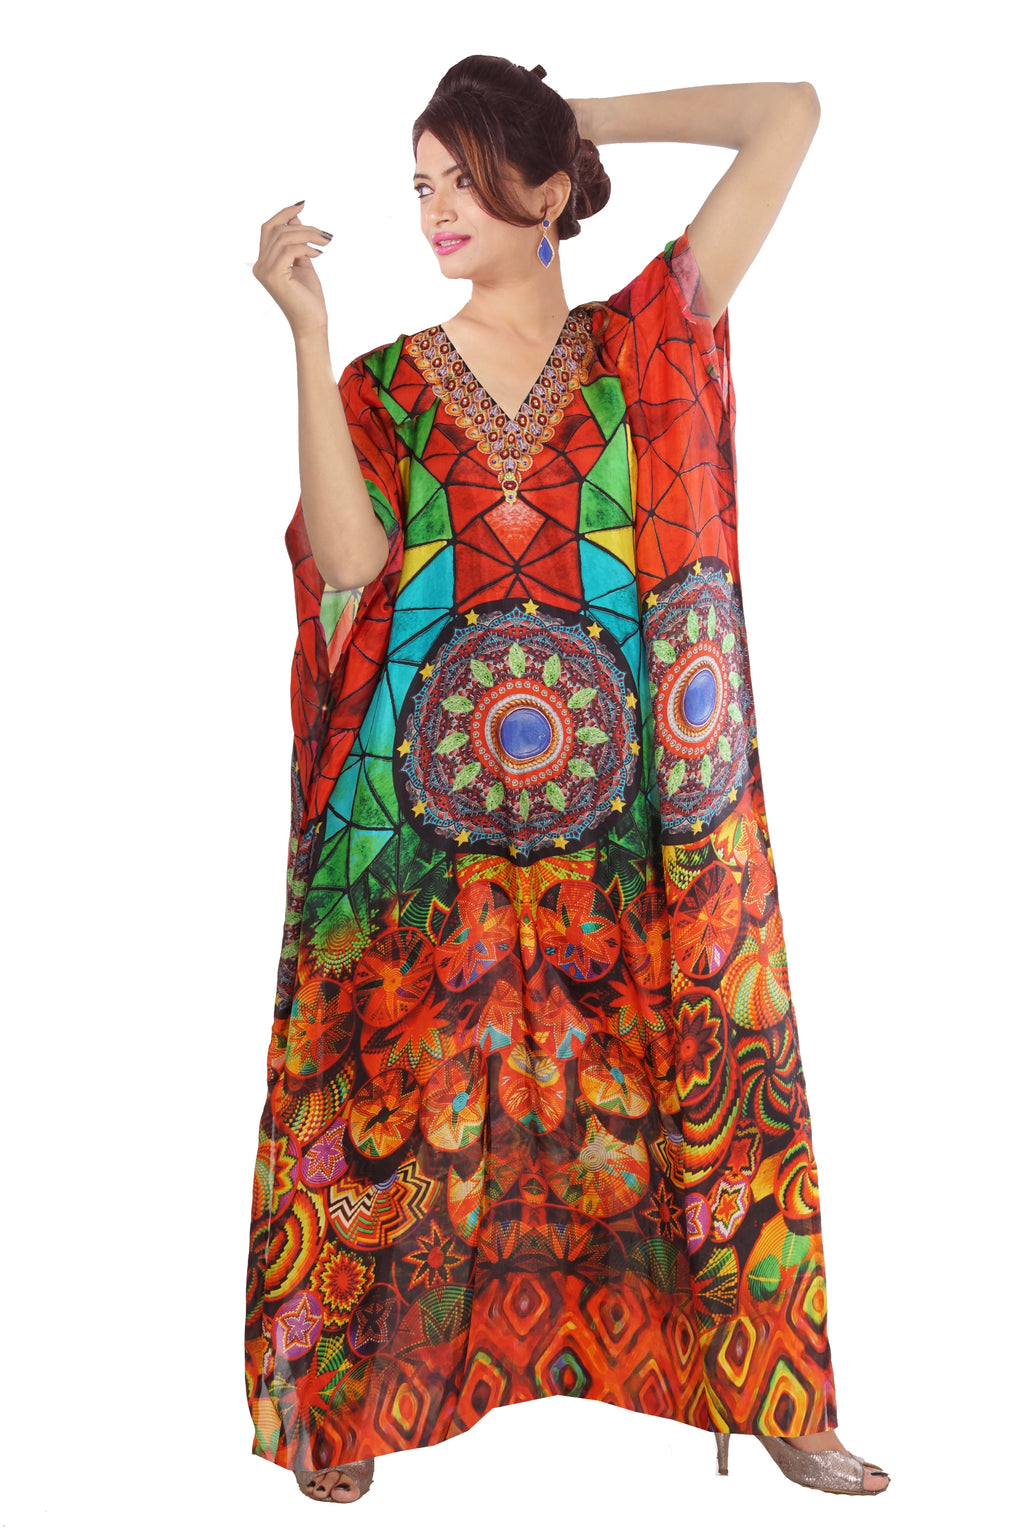 wholesale kaftans